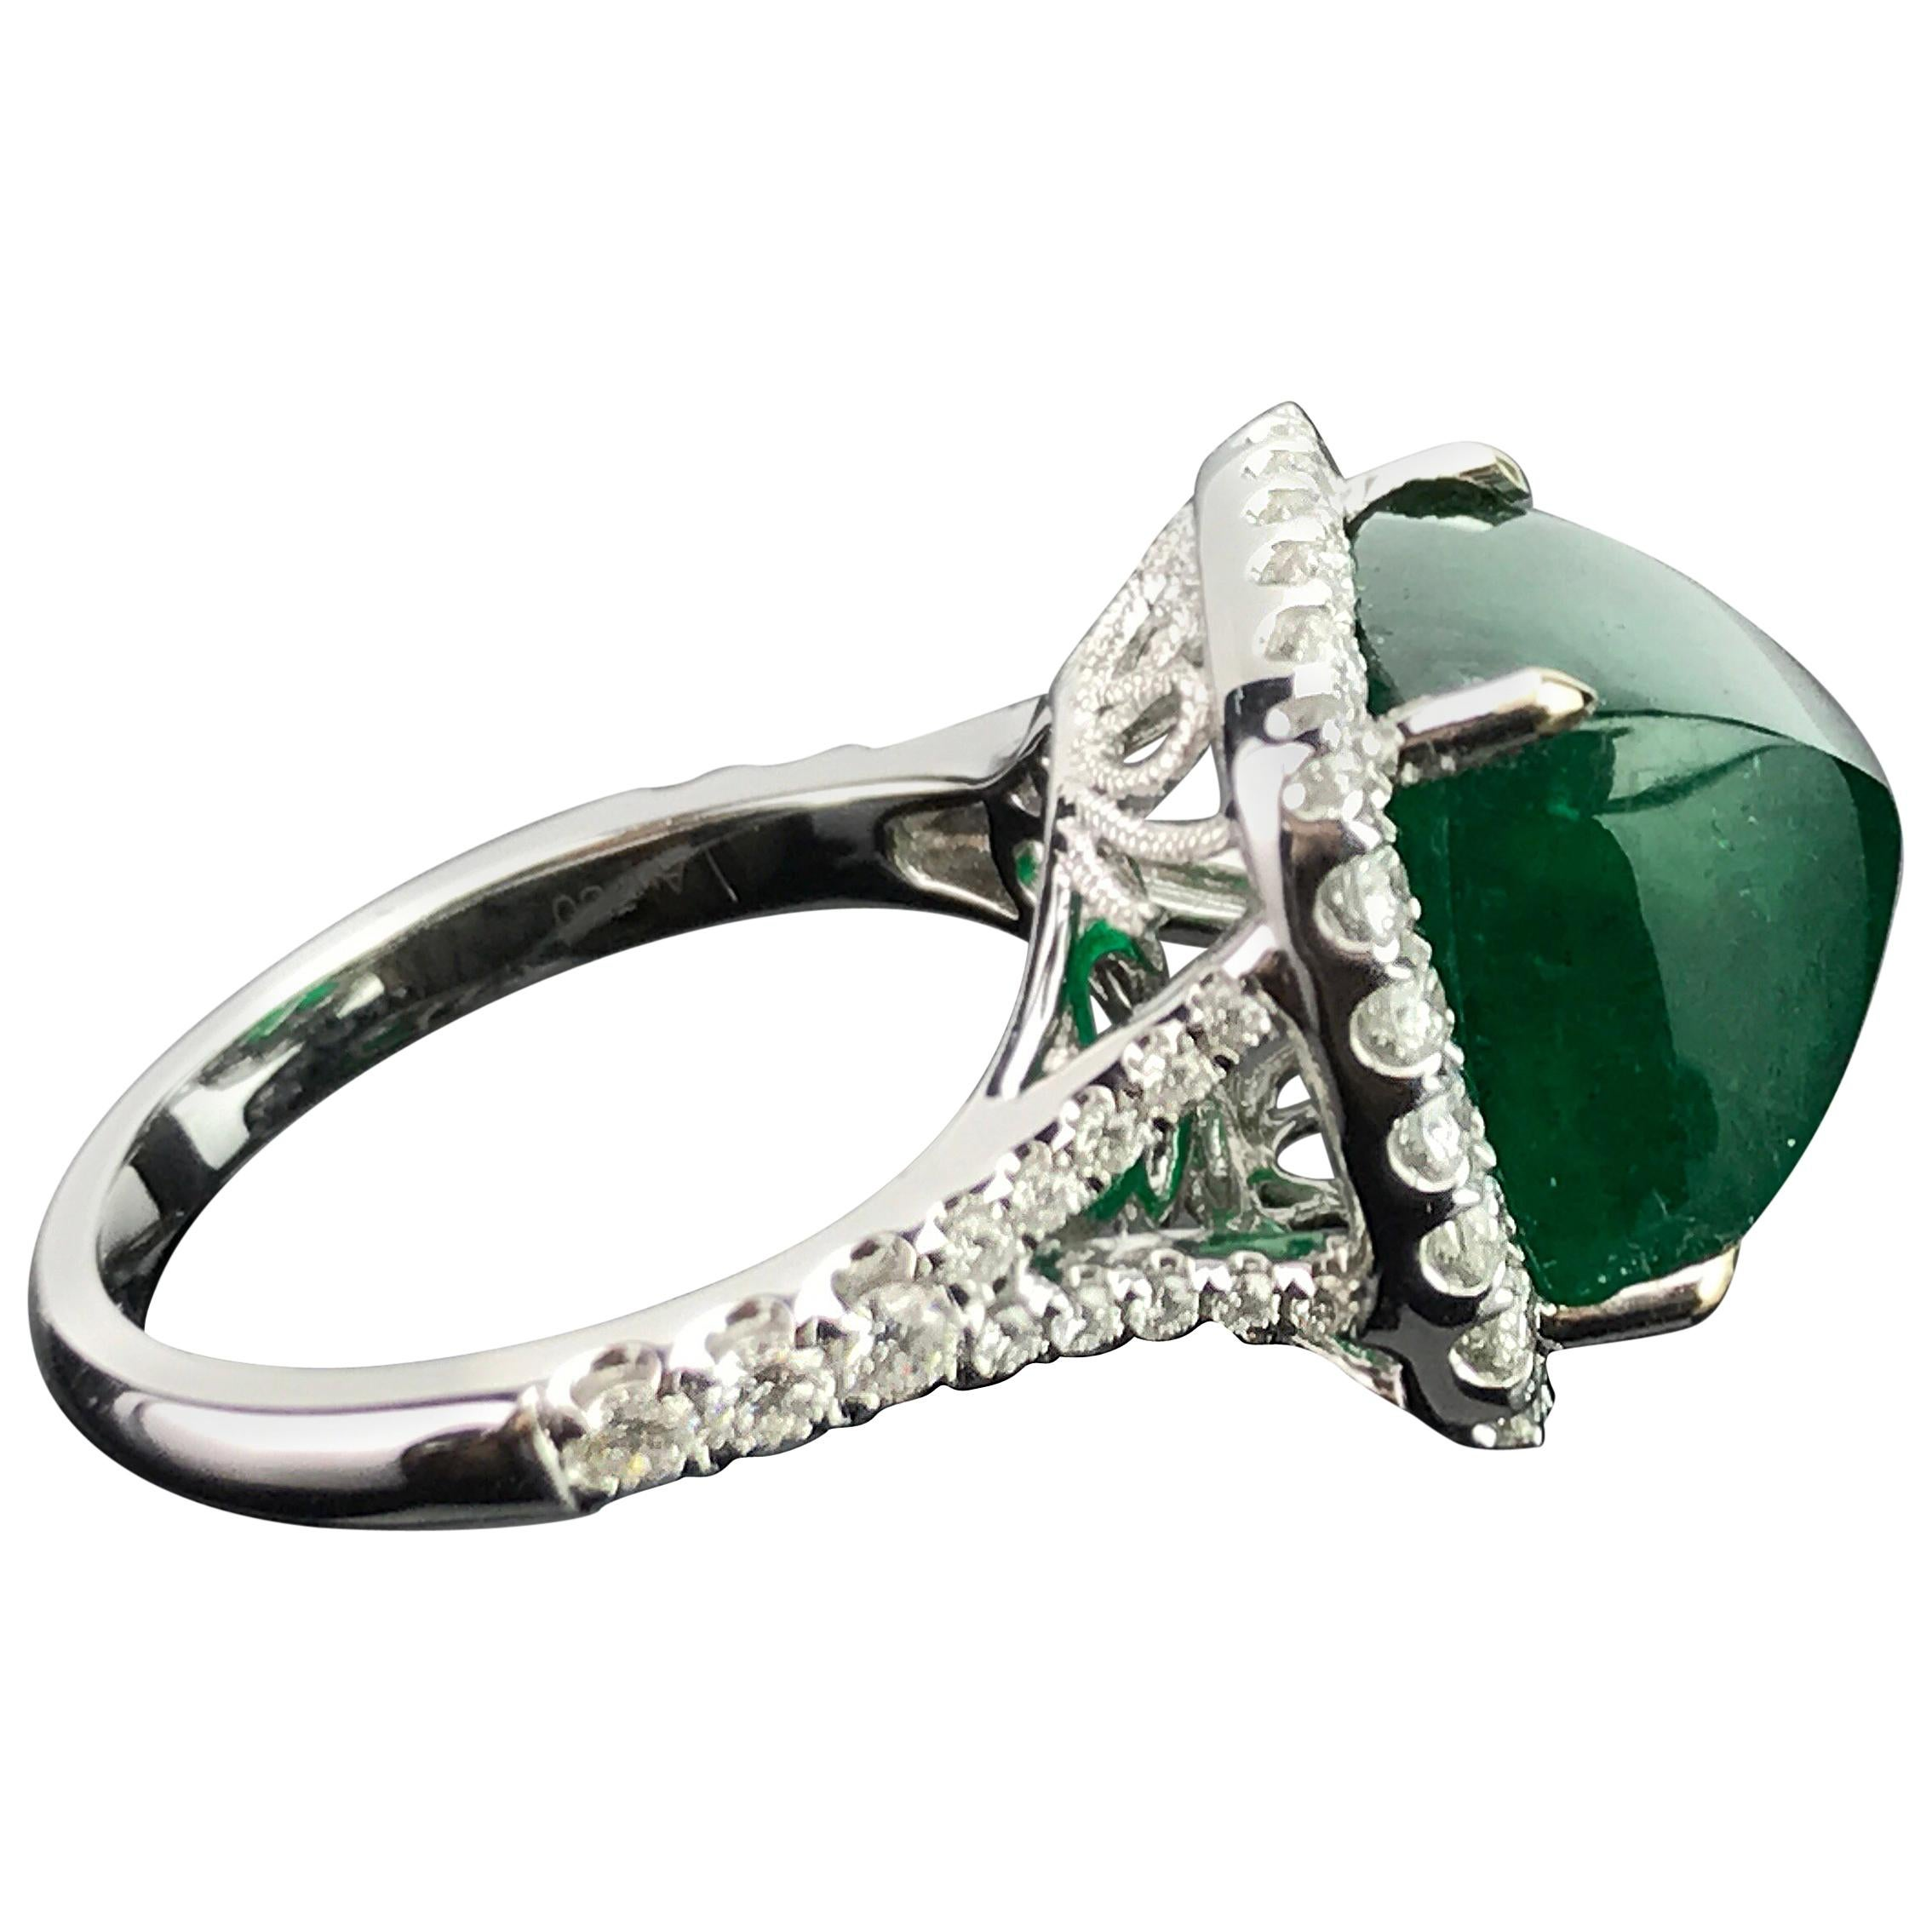 8.54 Carat Emerald Sugarloaf and Diamond Statement Ring